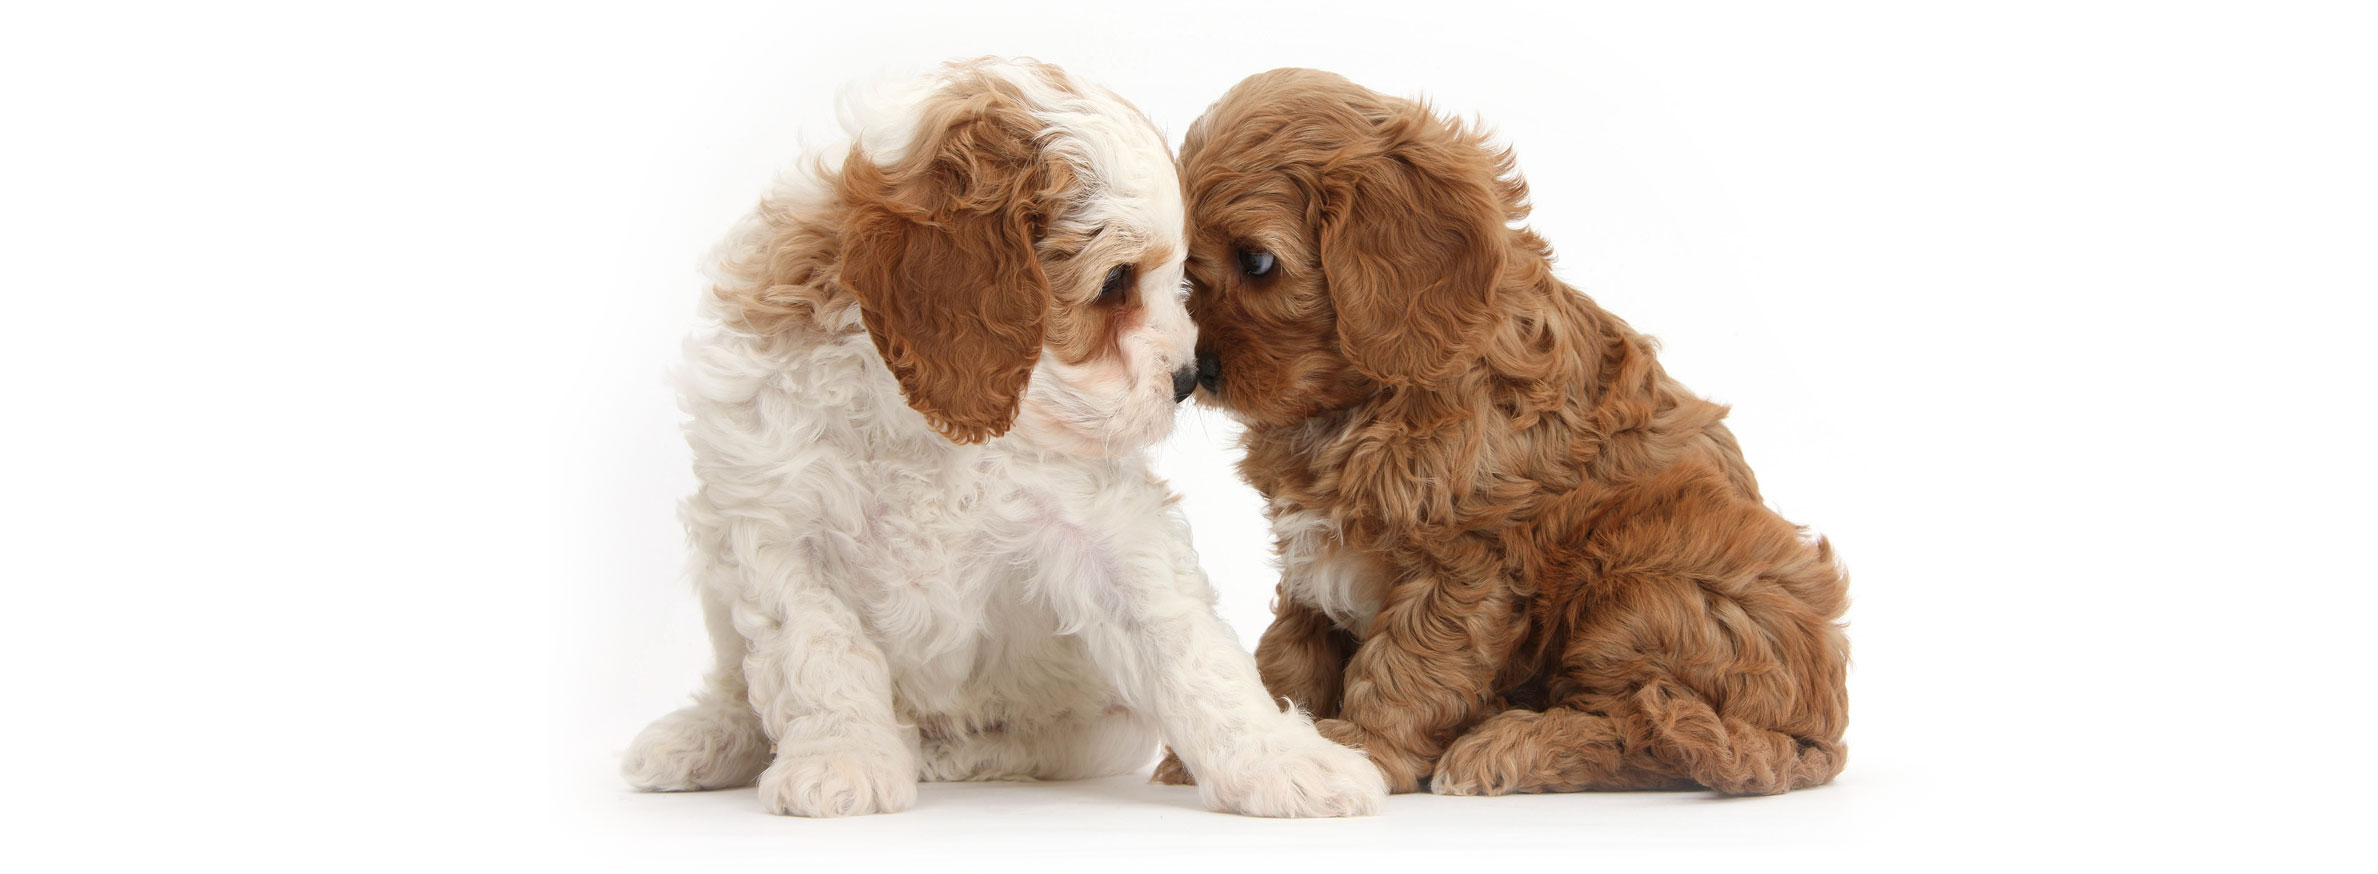 Missouri labradoodle puppies